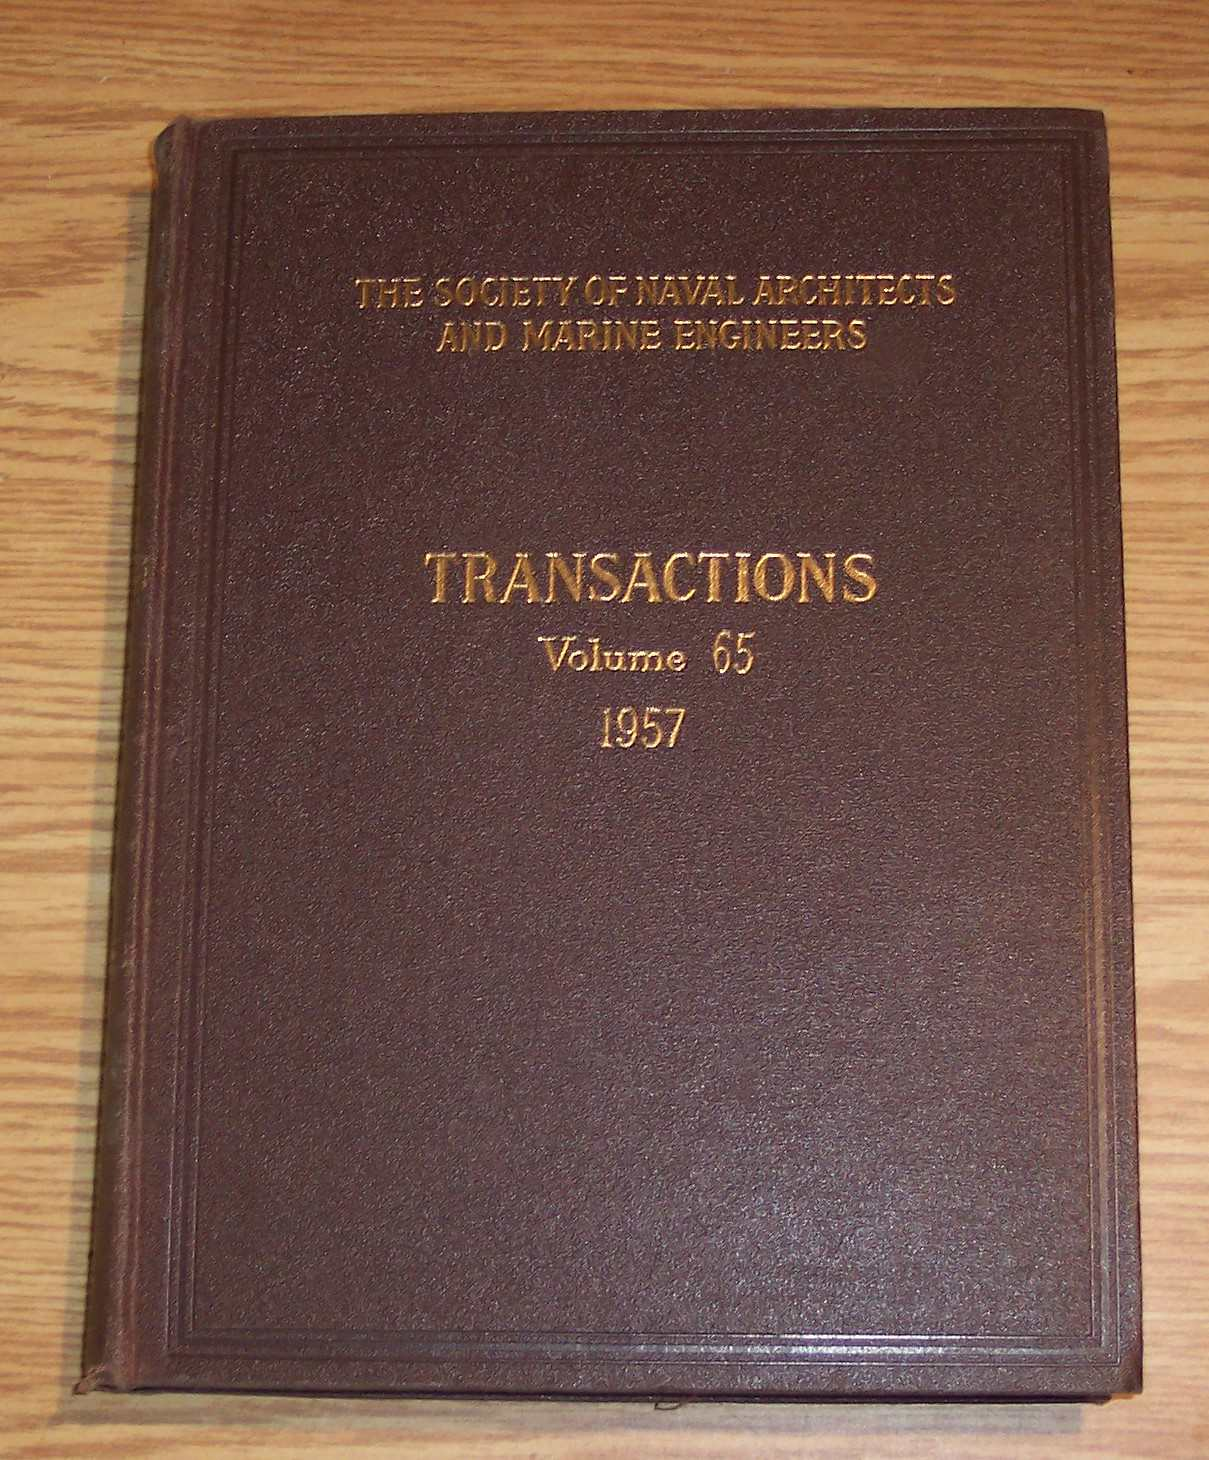 Image for The Society of Naval Architects and Marine Engineers Transactions Volume 65 1957